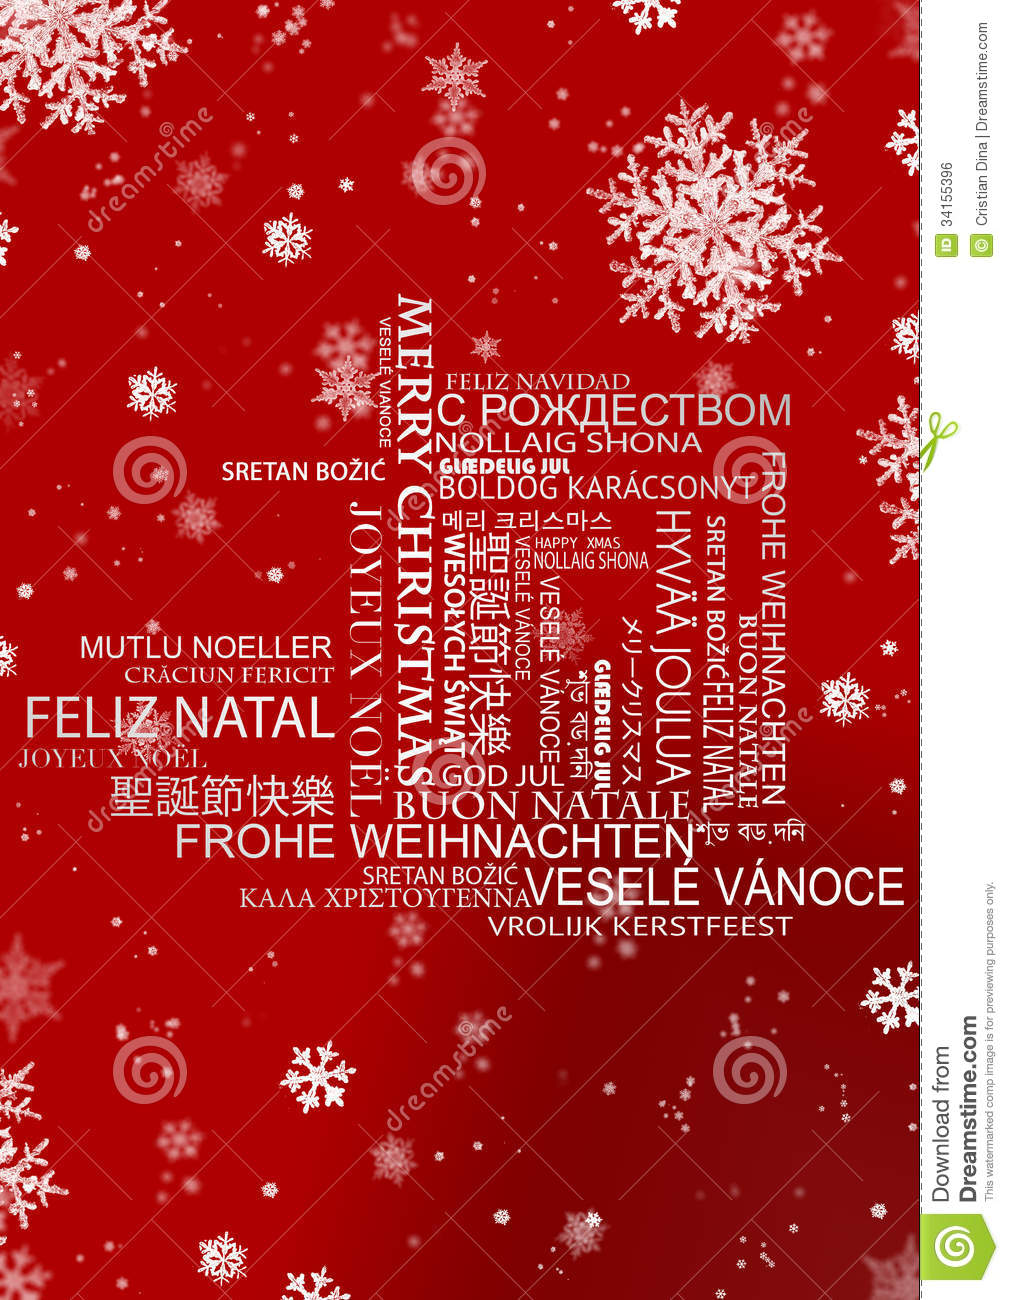 Christmas multi language greetings stock illustration christmas multi language greetings kristyandbryce Image collections